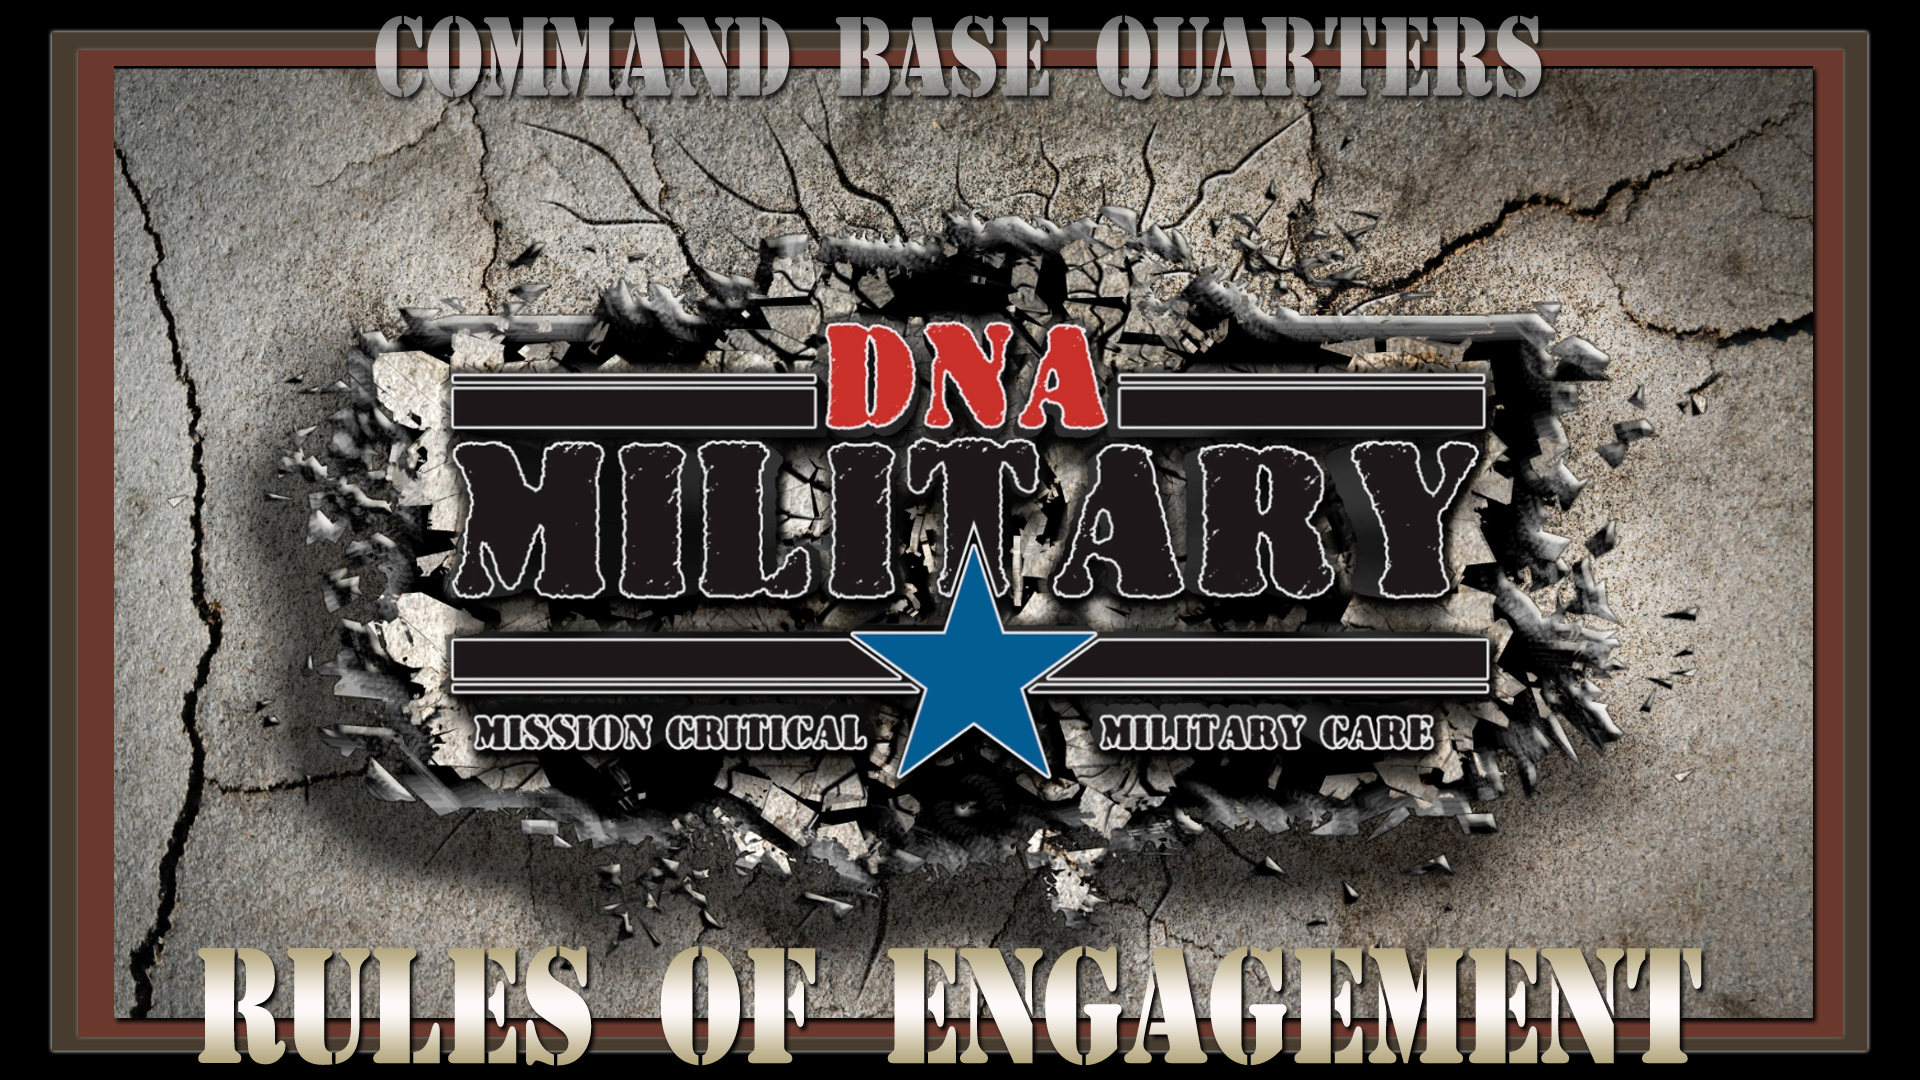 Rules of Engagement - CBQ